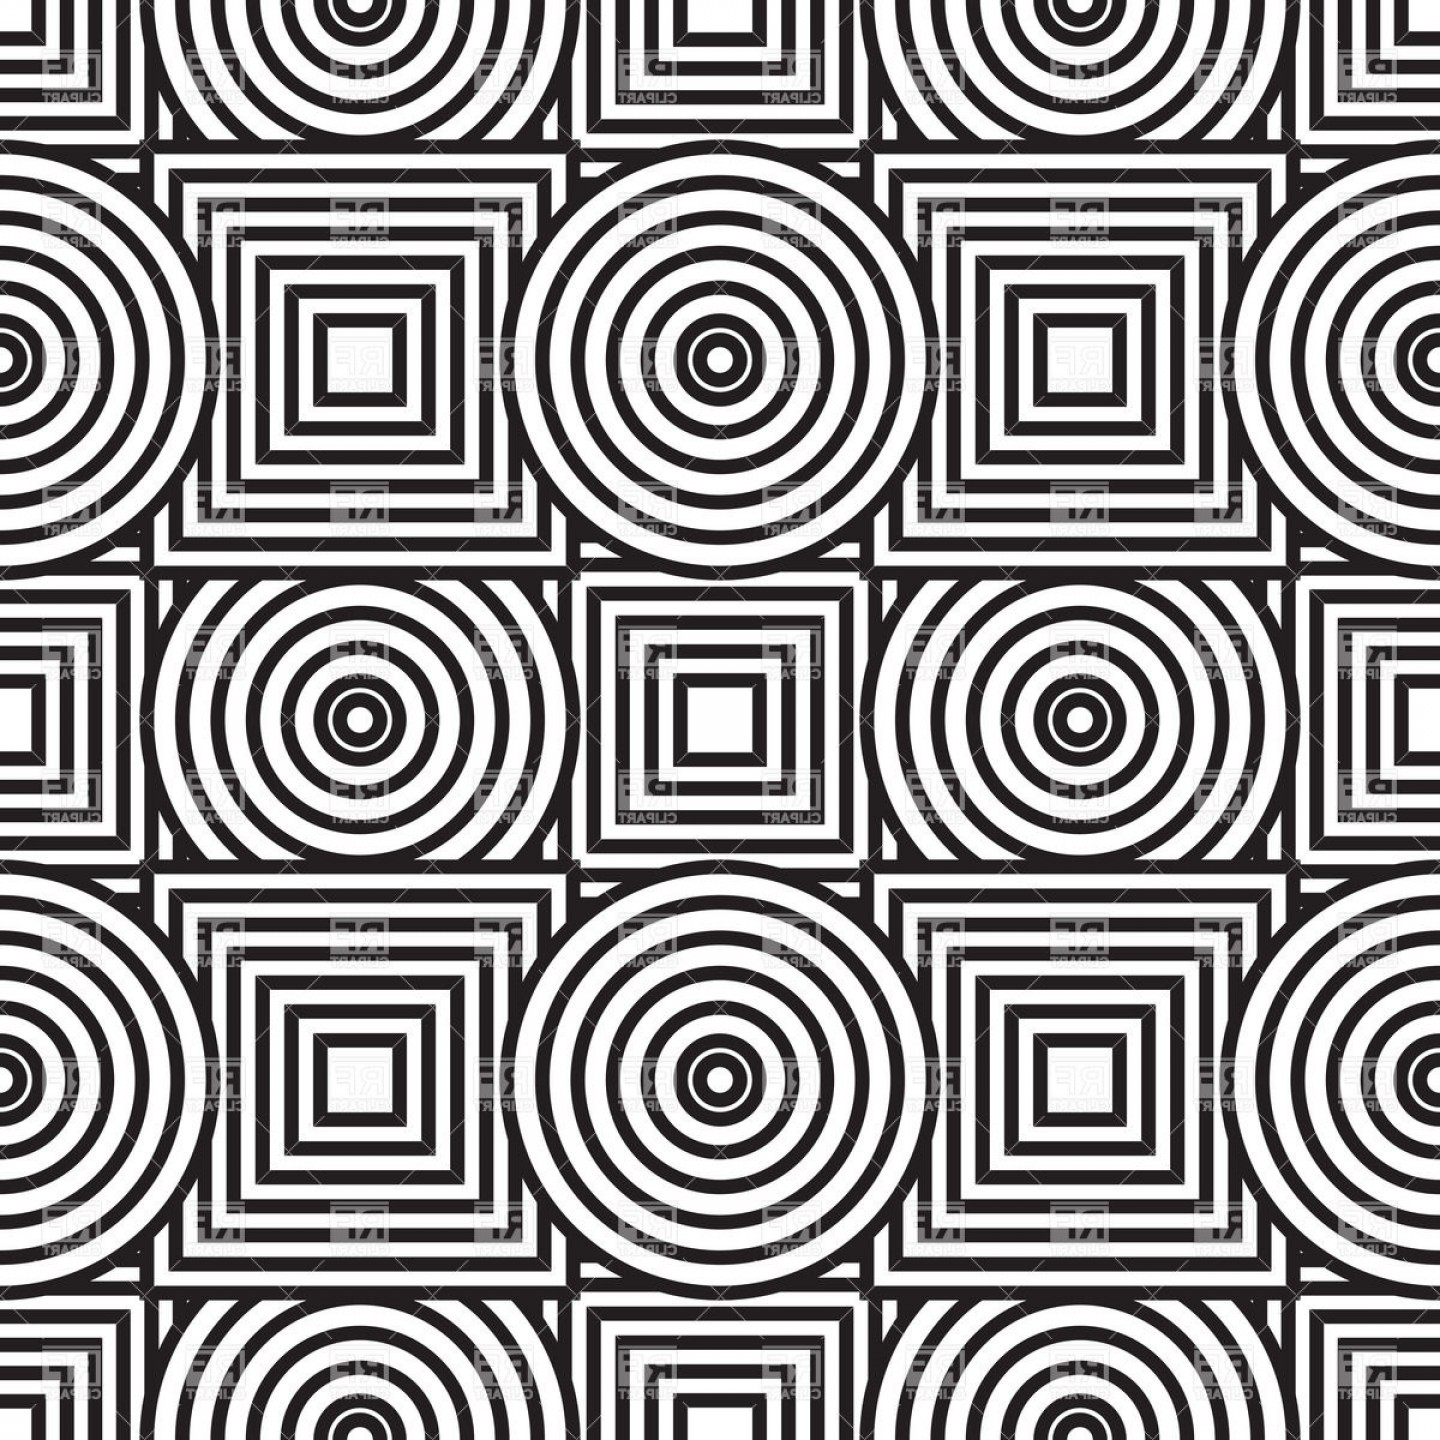 Black And White Circle Vector Graphics: Black And White Abstract Background With Circles And Squares Vector Clipart